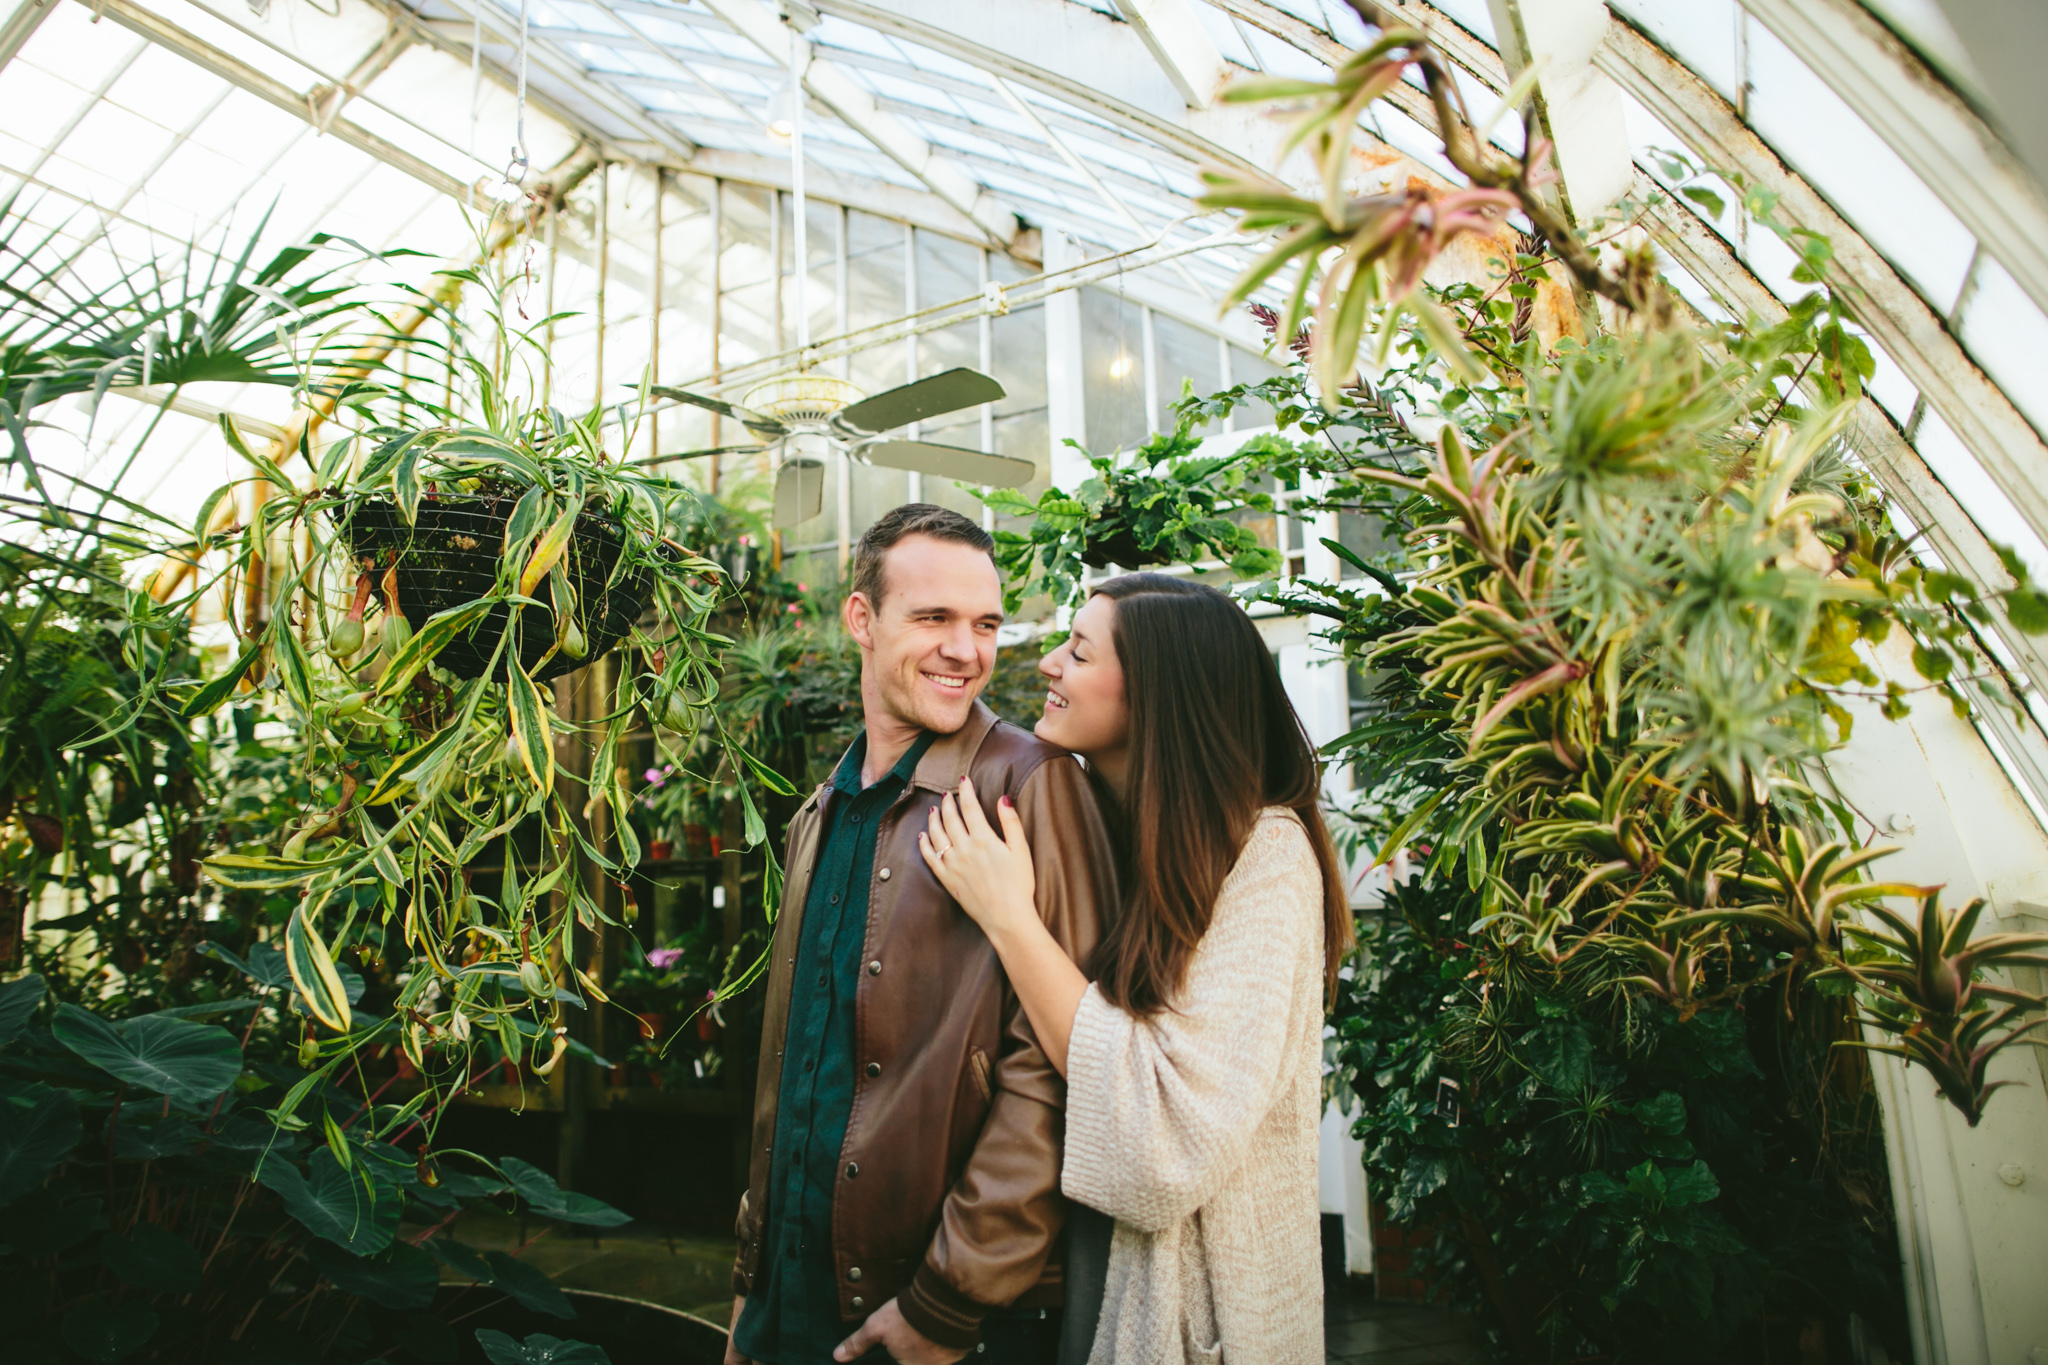 Sunee+Adam-Proposal-KellyBoitanoPhotography_WEB20151229_0028